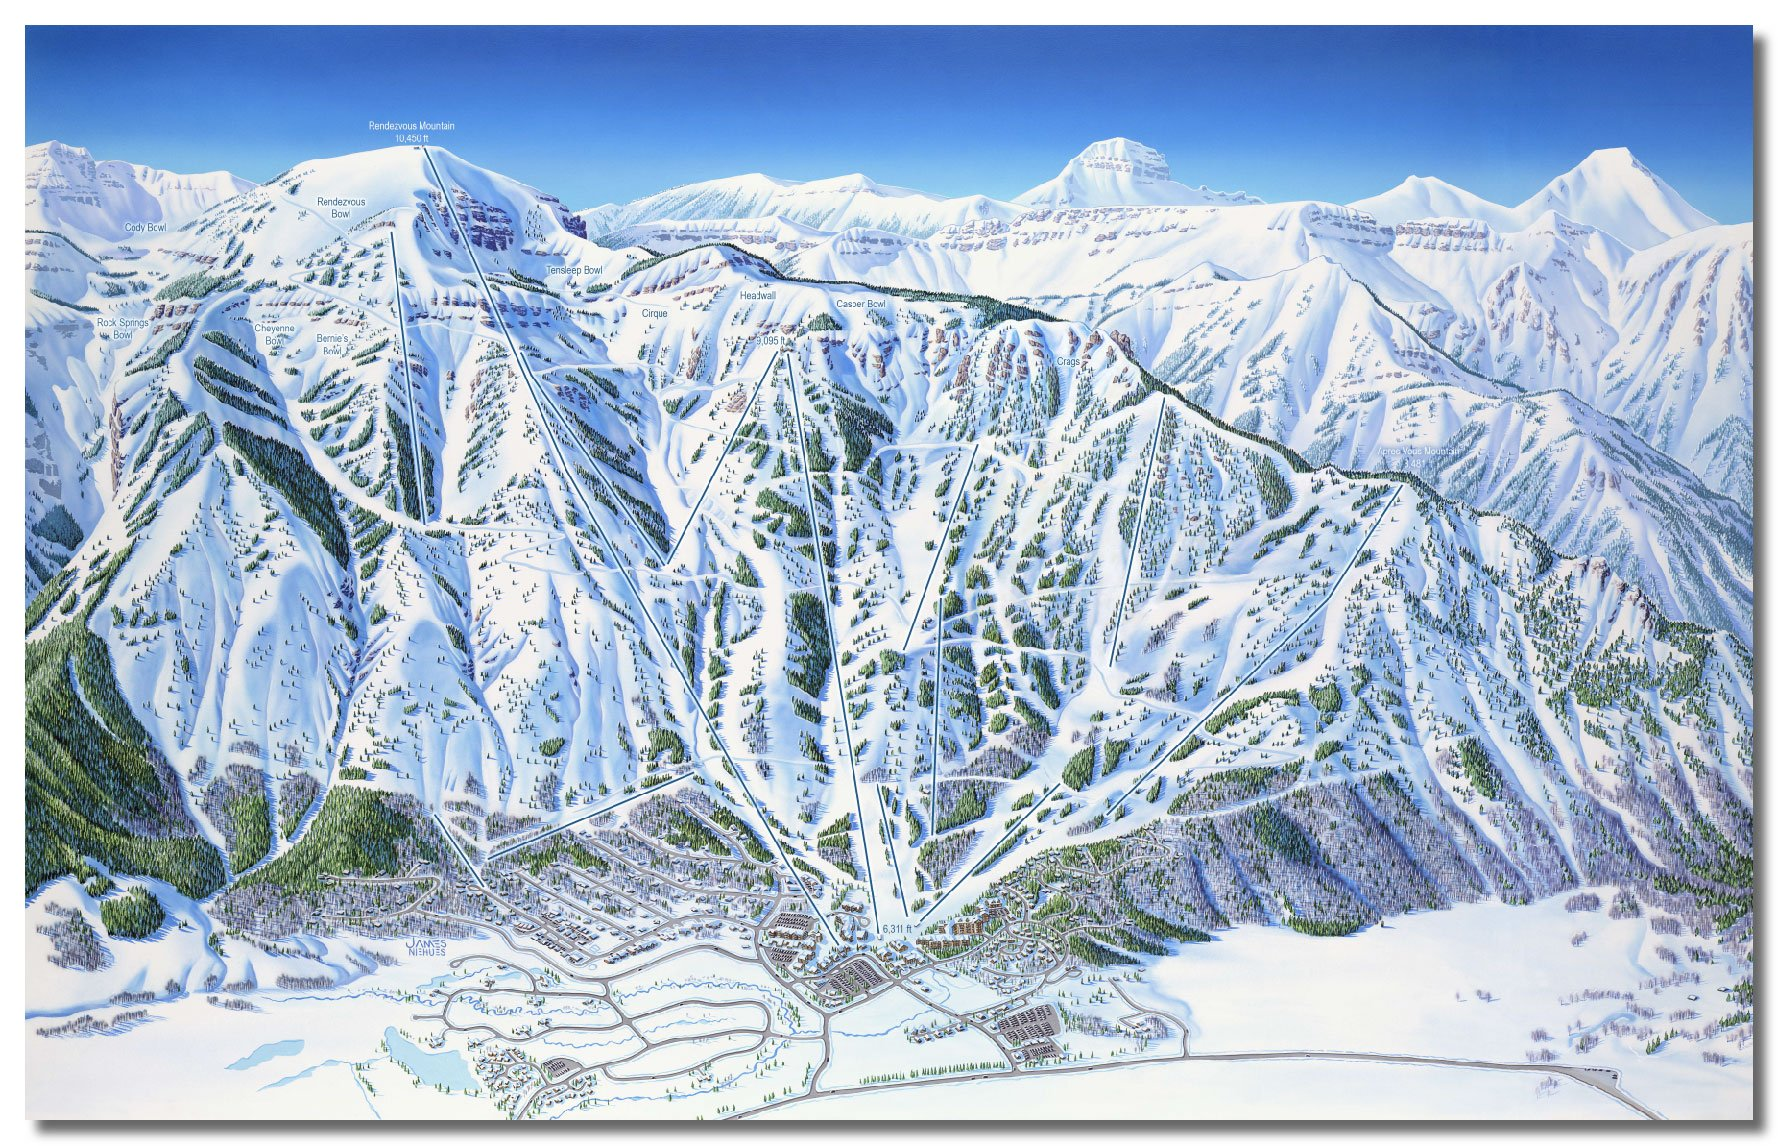 Ski Resort Map Artists - Jackson Hole